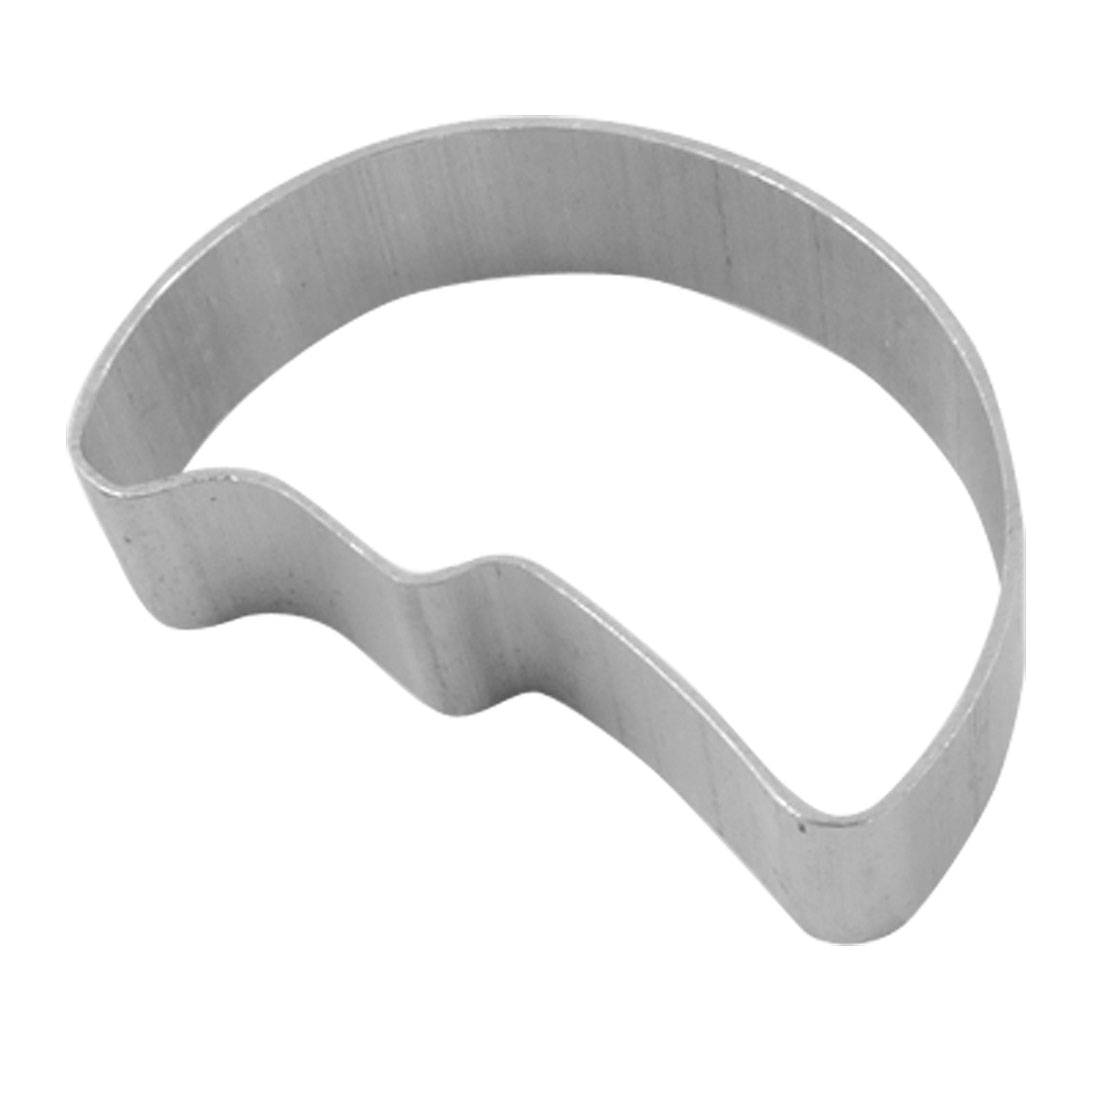 Party Metal Moon Shaped Baking Biscuit Cookie Cutter Mould